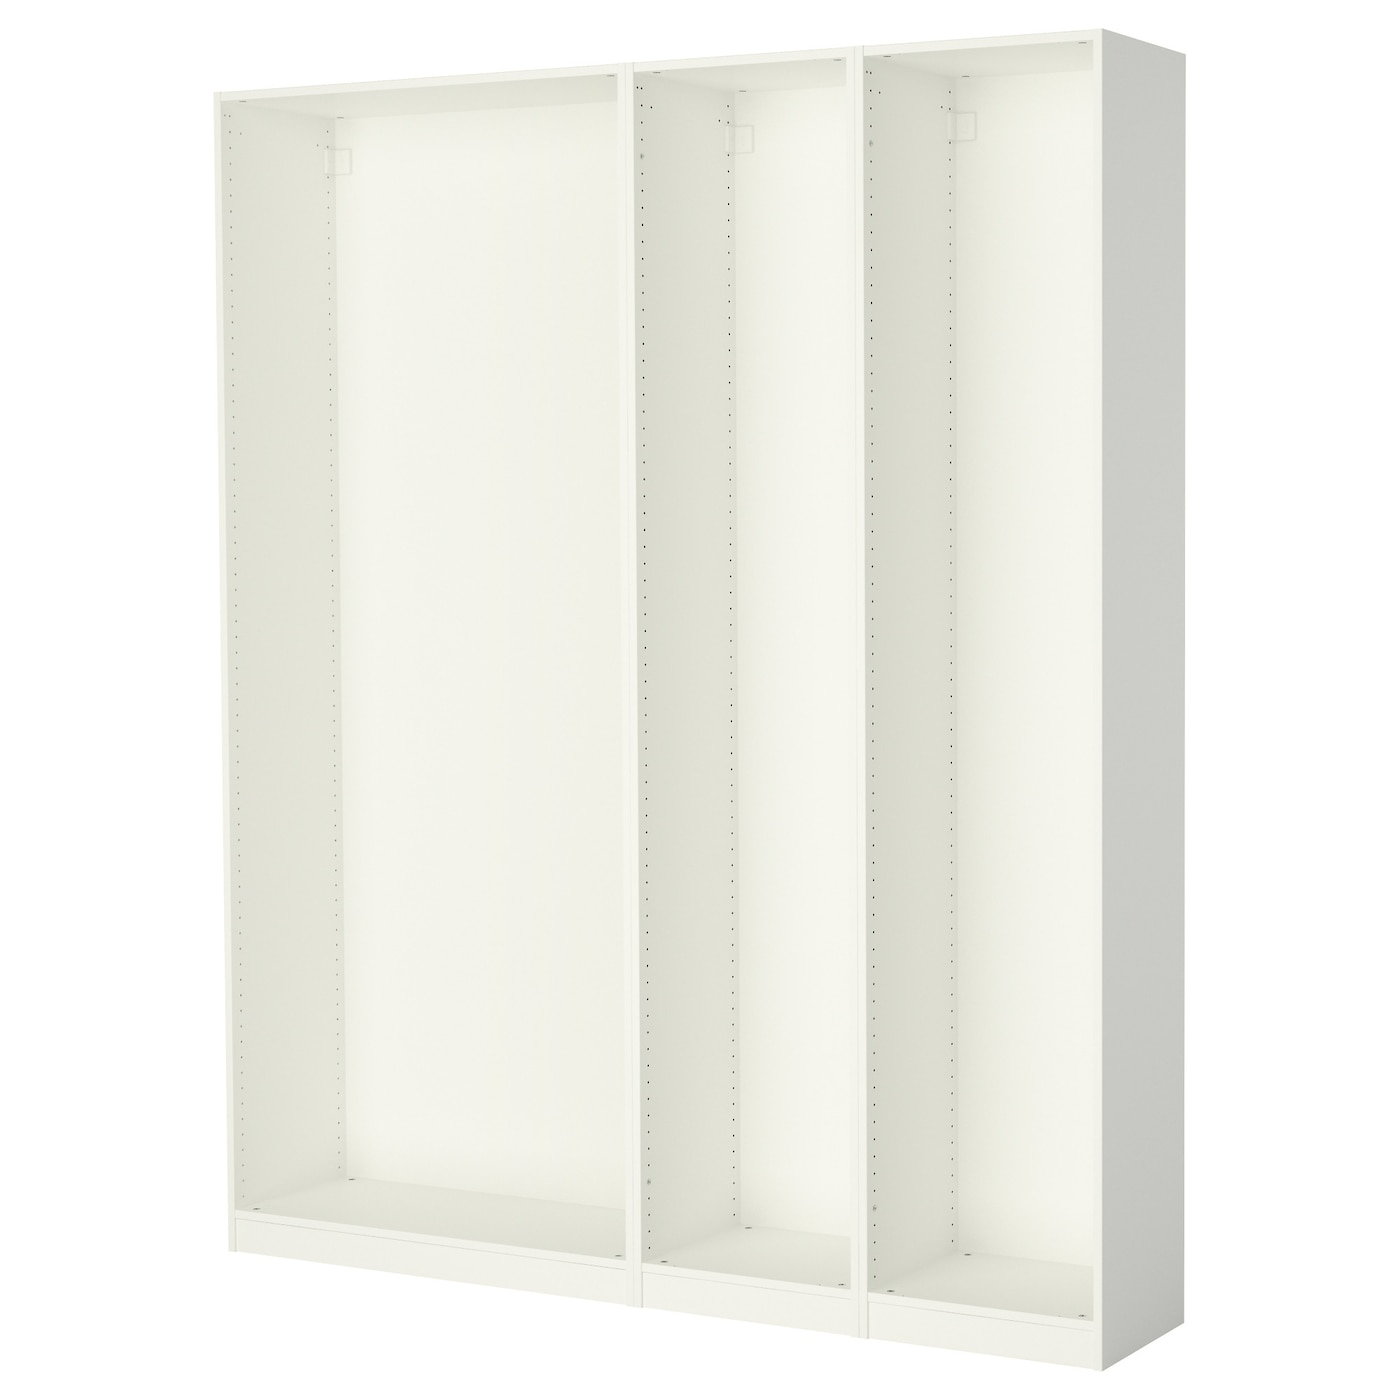 pax 3 caissons armoire blanc 200 x 35 x 236 cm ikea. Black Bedroom Furniture Sets. Home Design Ideas